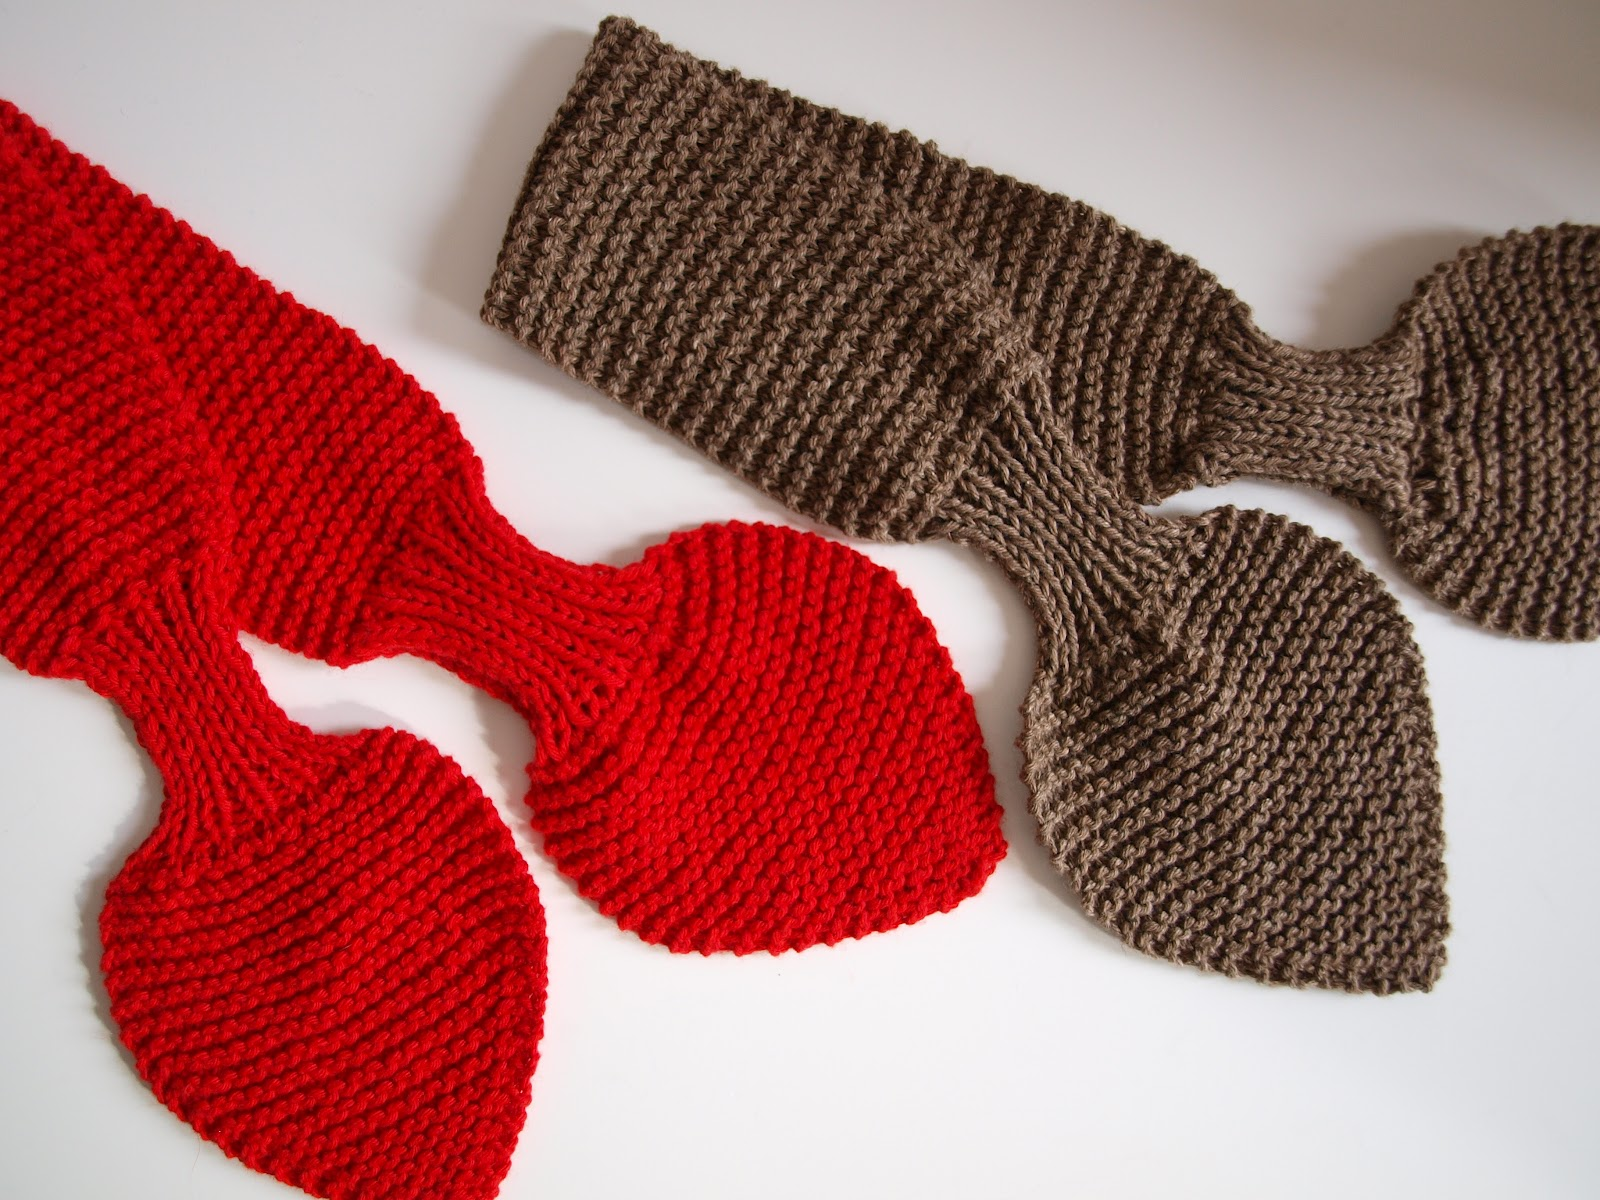 Knitting Pattern Bow Knot Scarf : Crafted by Carly: Bow-knot Scarves